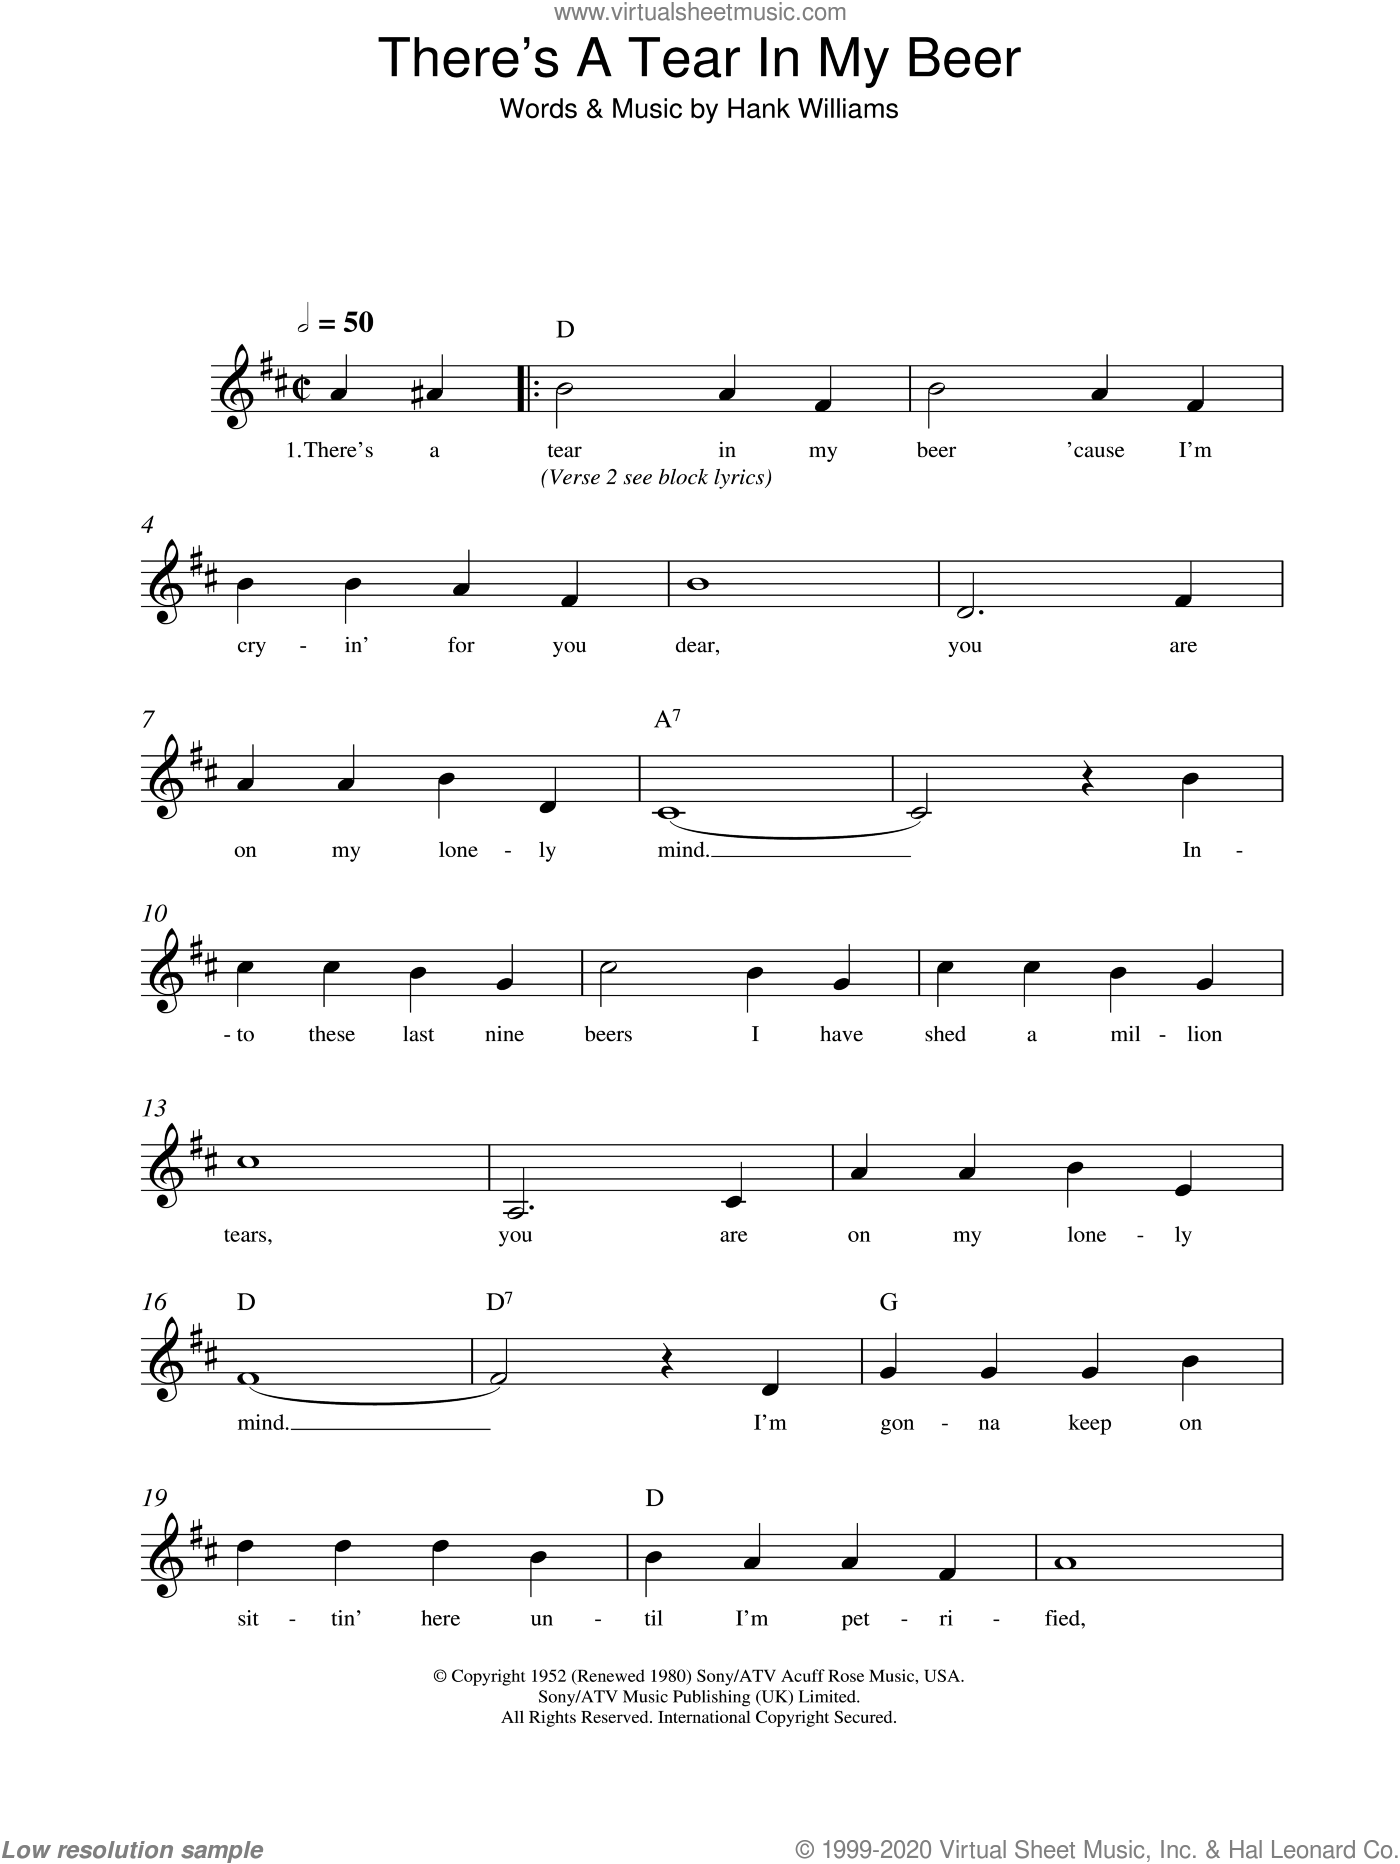 There's A Tear In My Beer sheet music for voice and other instruments (fake book) by Hank Williams, intermediate skill level